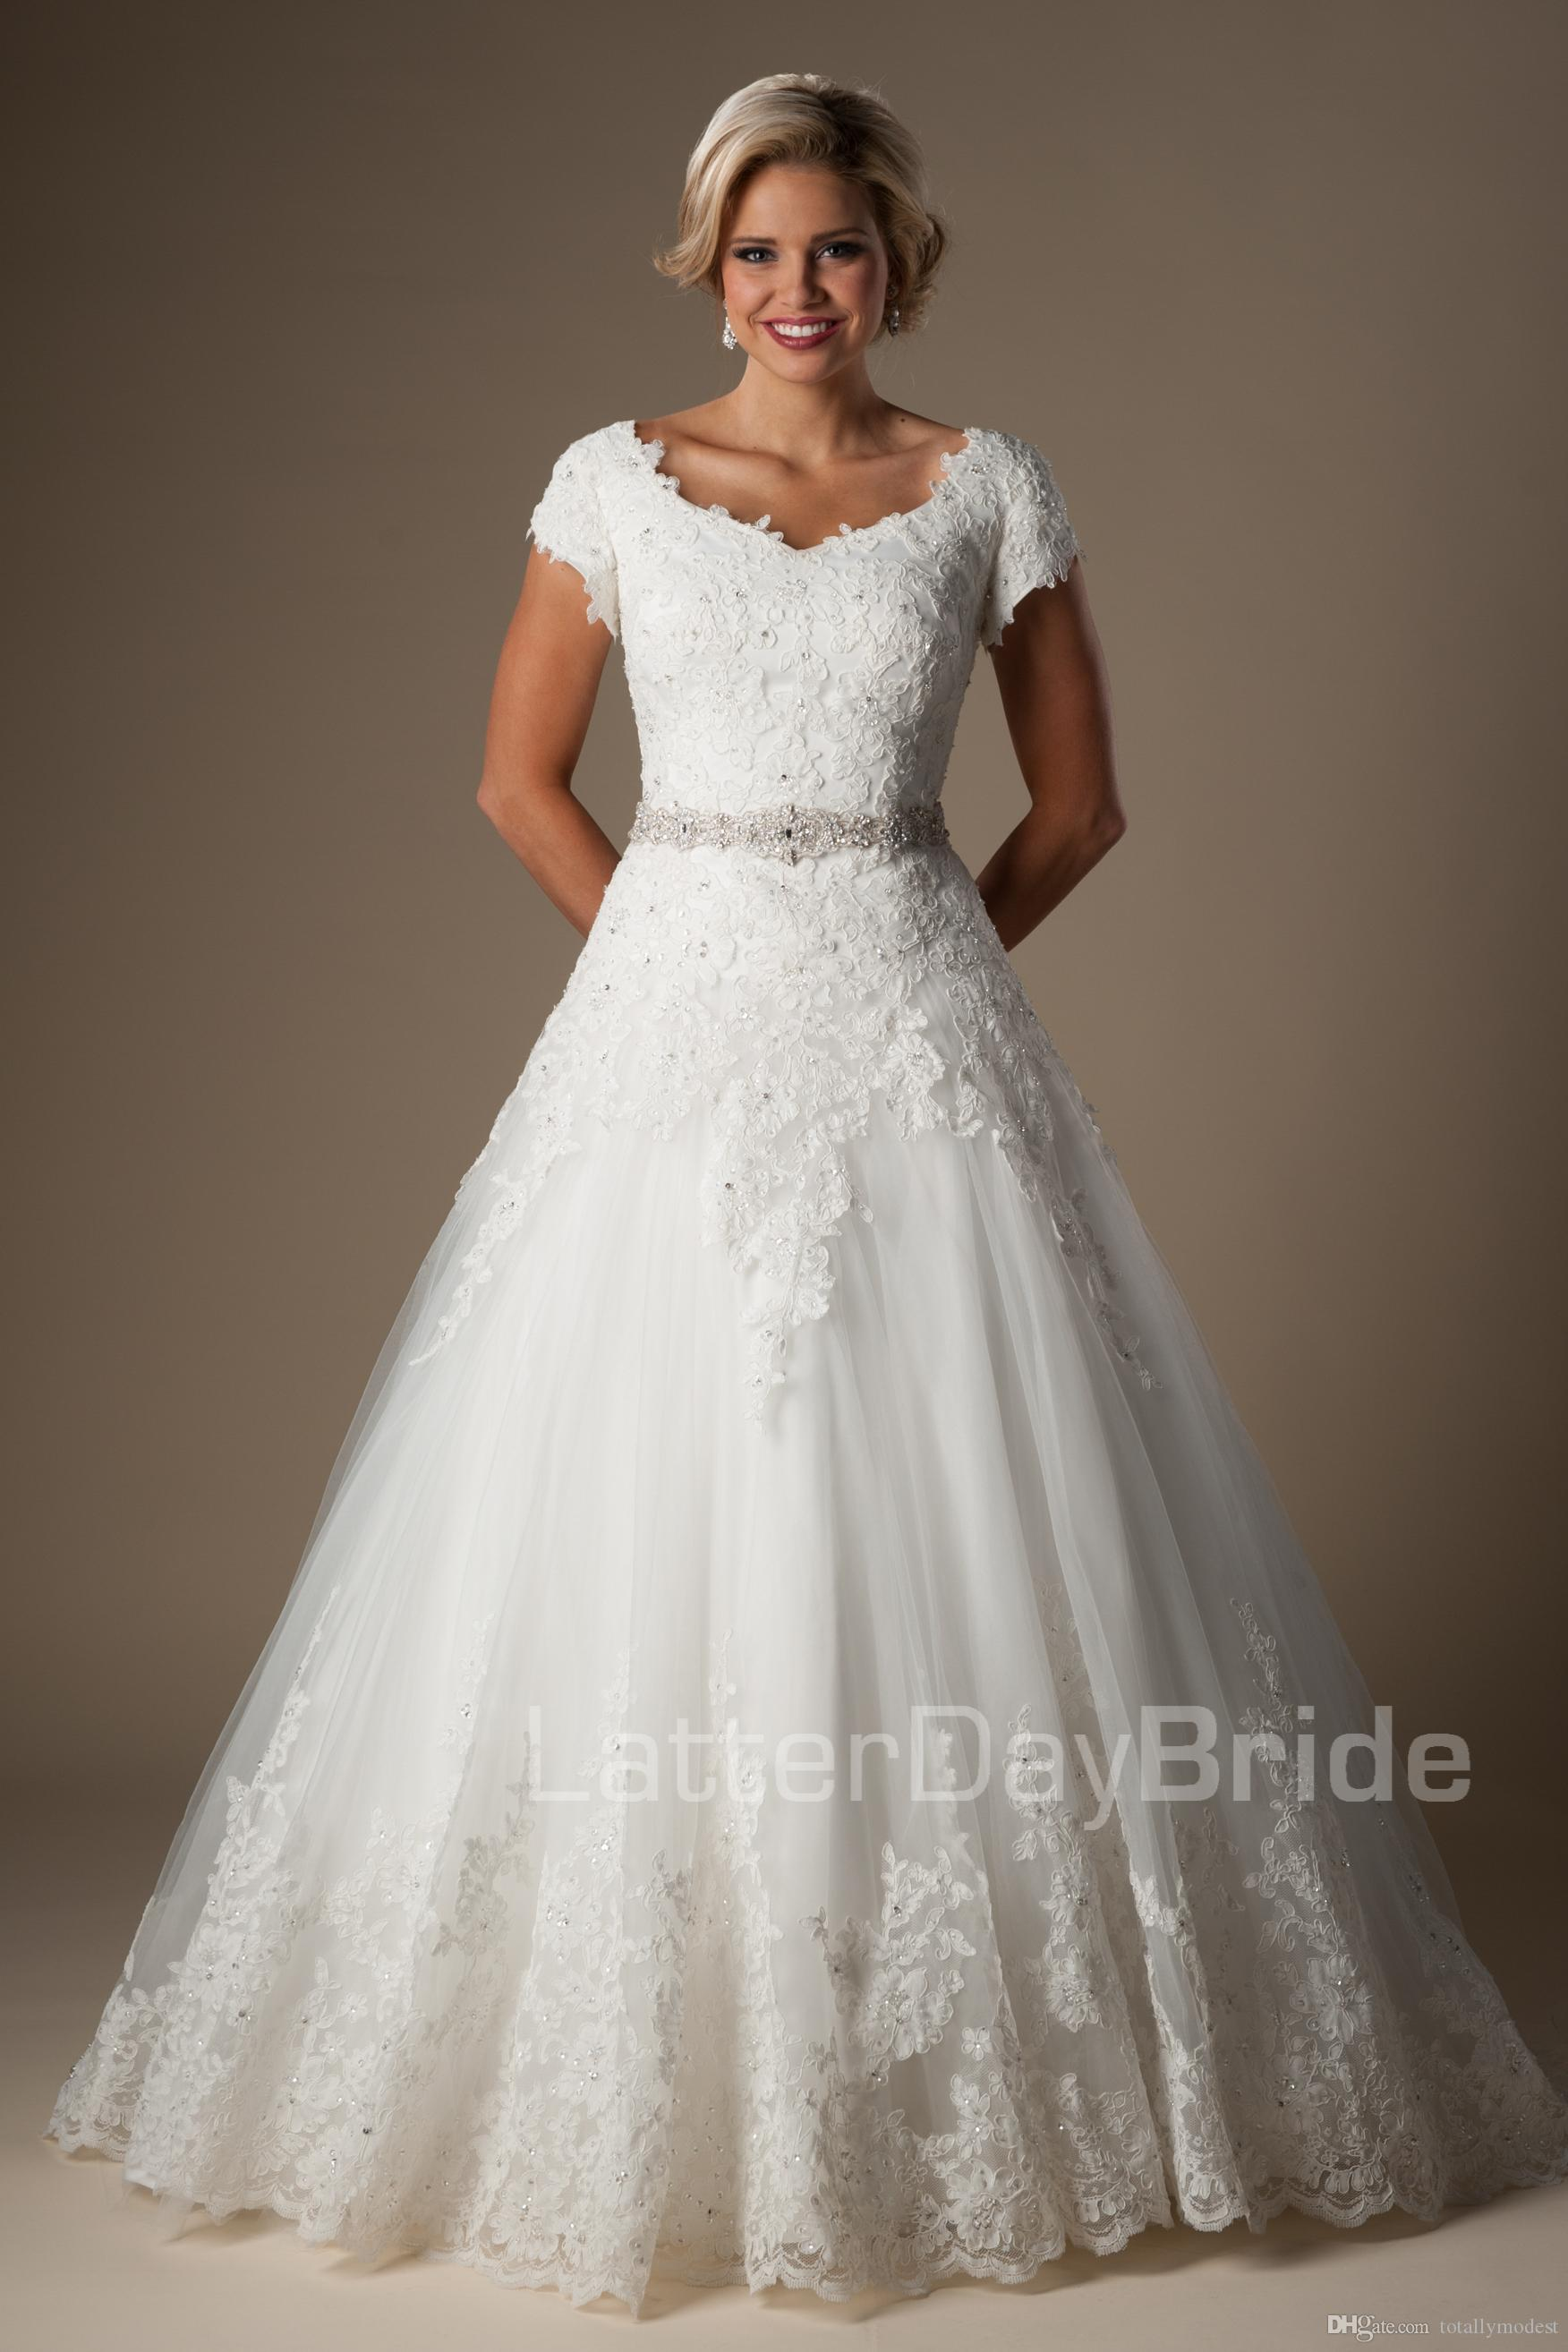 2016 Ivory Lace Ball Gown Modest Wedding Dresses With